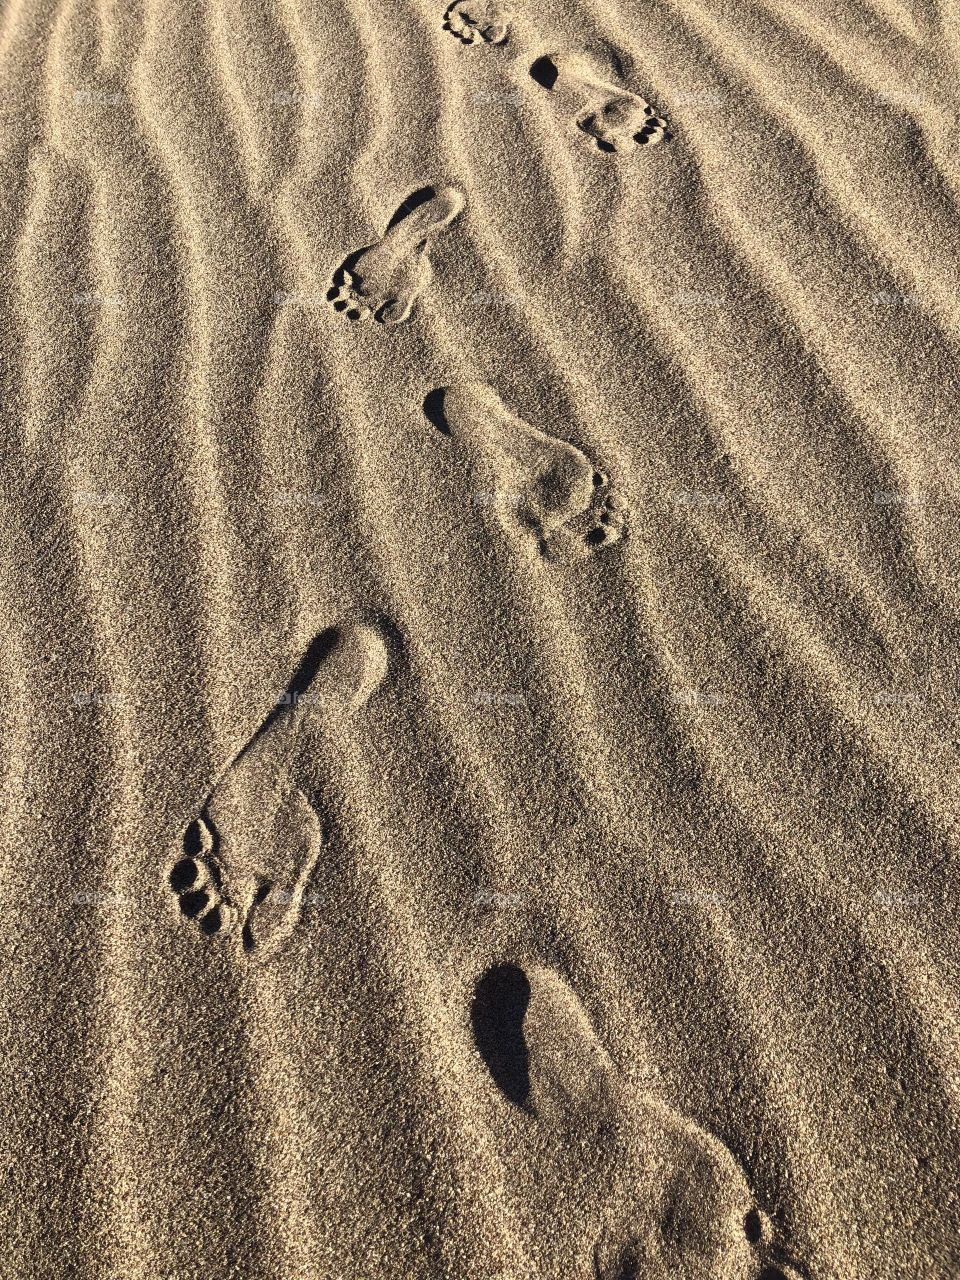 Footprints are what he have to show us the path we've been on and proves that with every step we take we get further in life creating a greater journey.